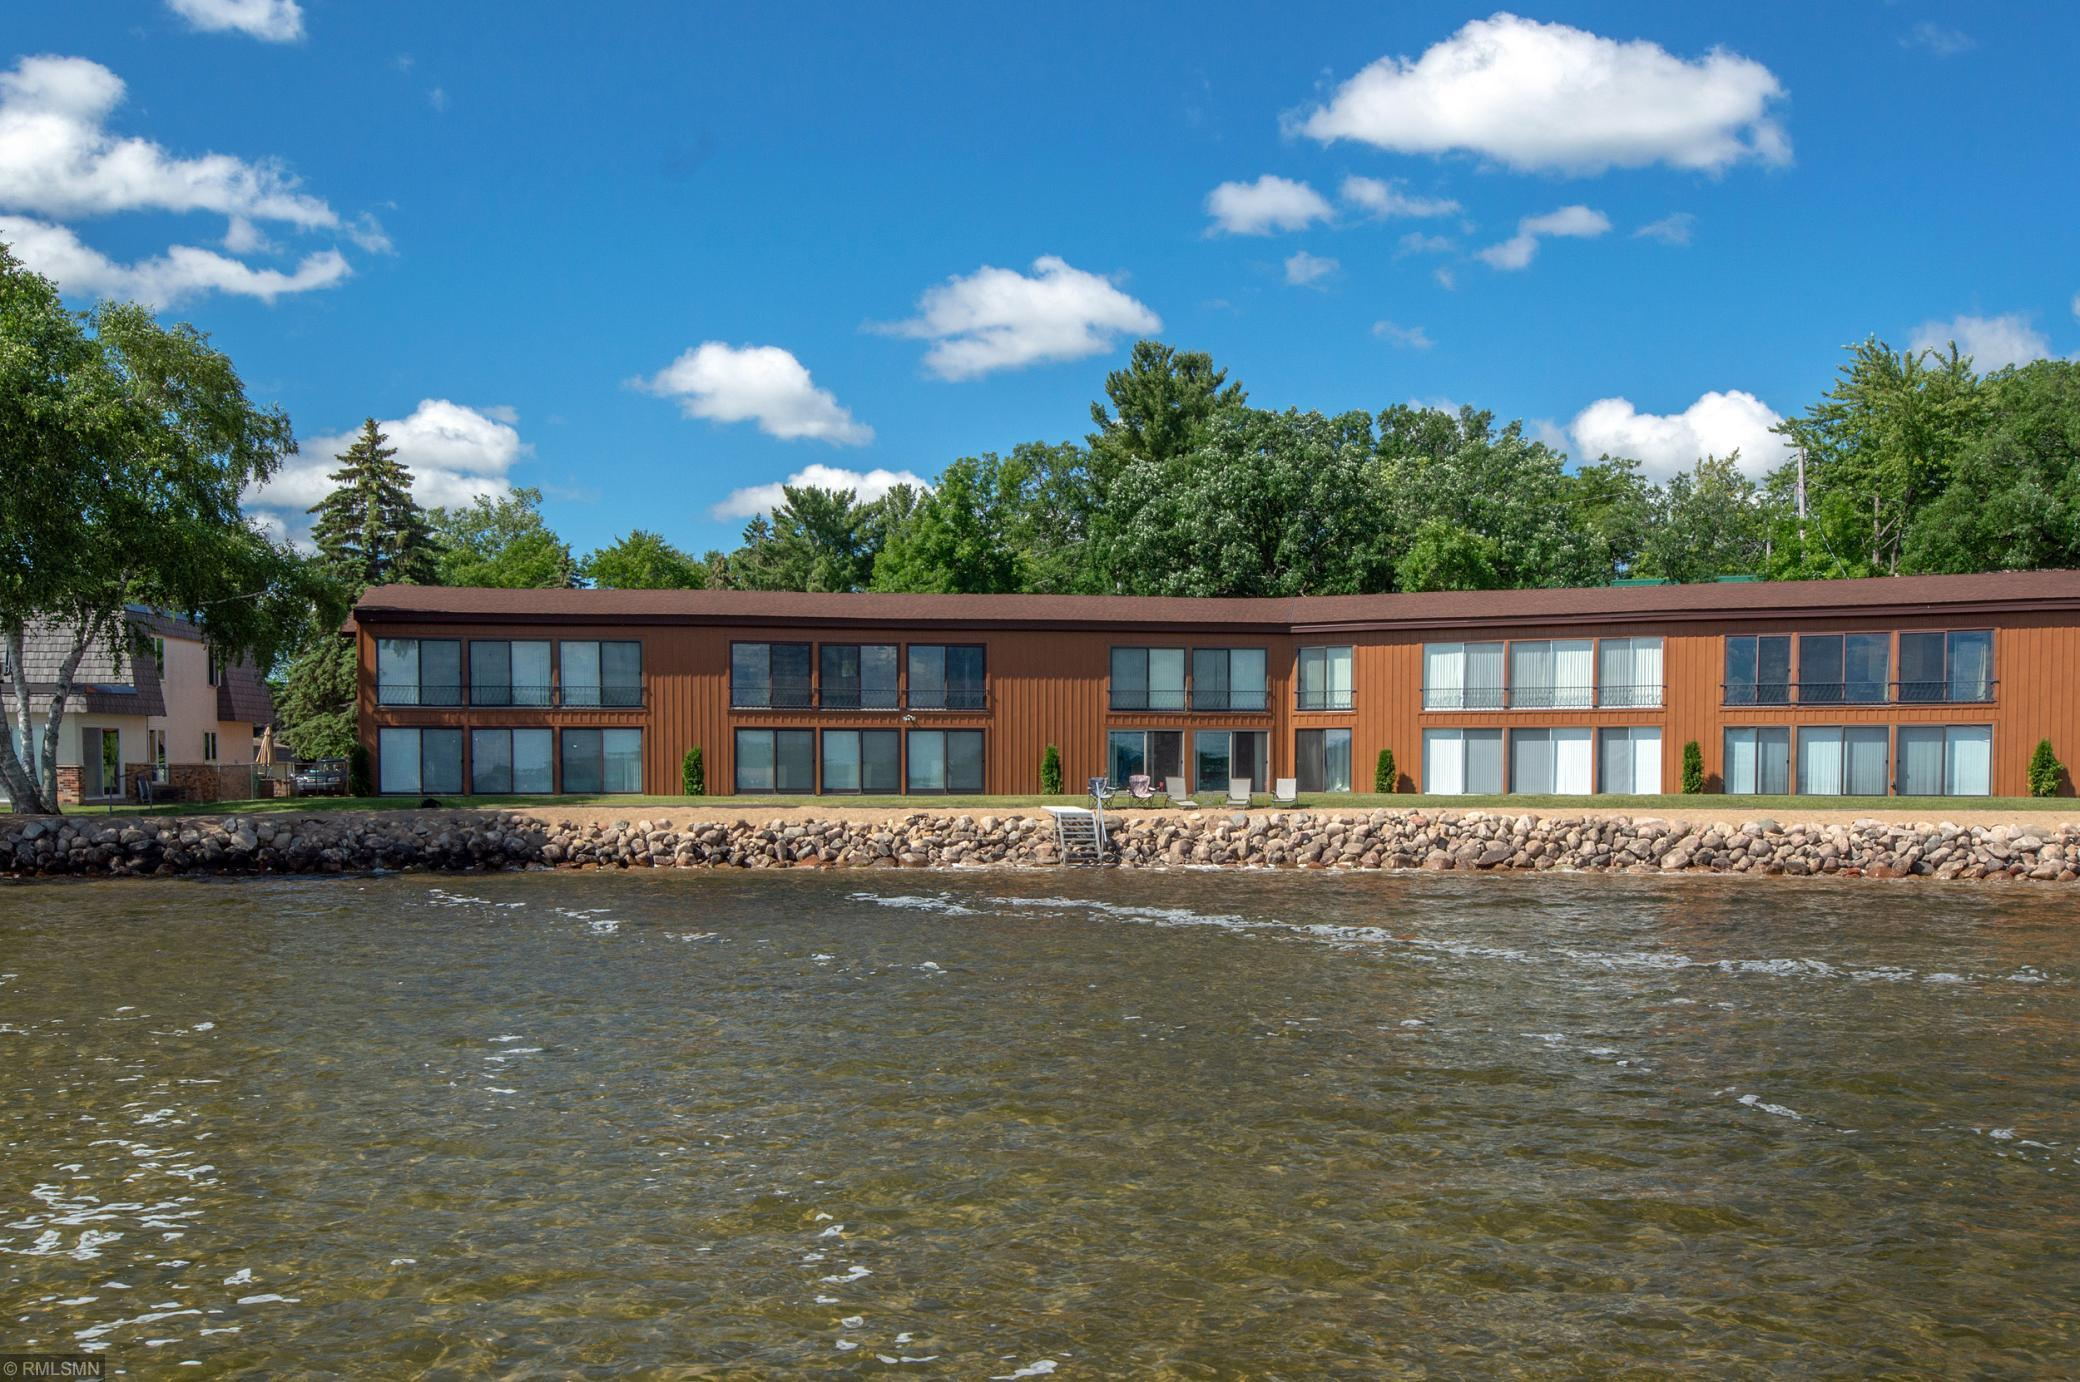 9125 Breezy Point #452 Property Photo - Breezy Point, MN real estate listing